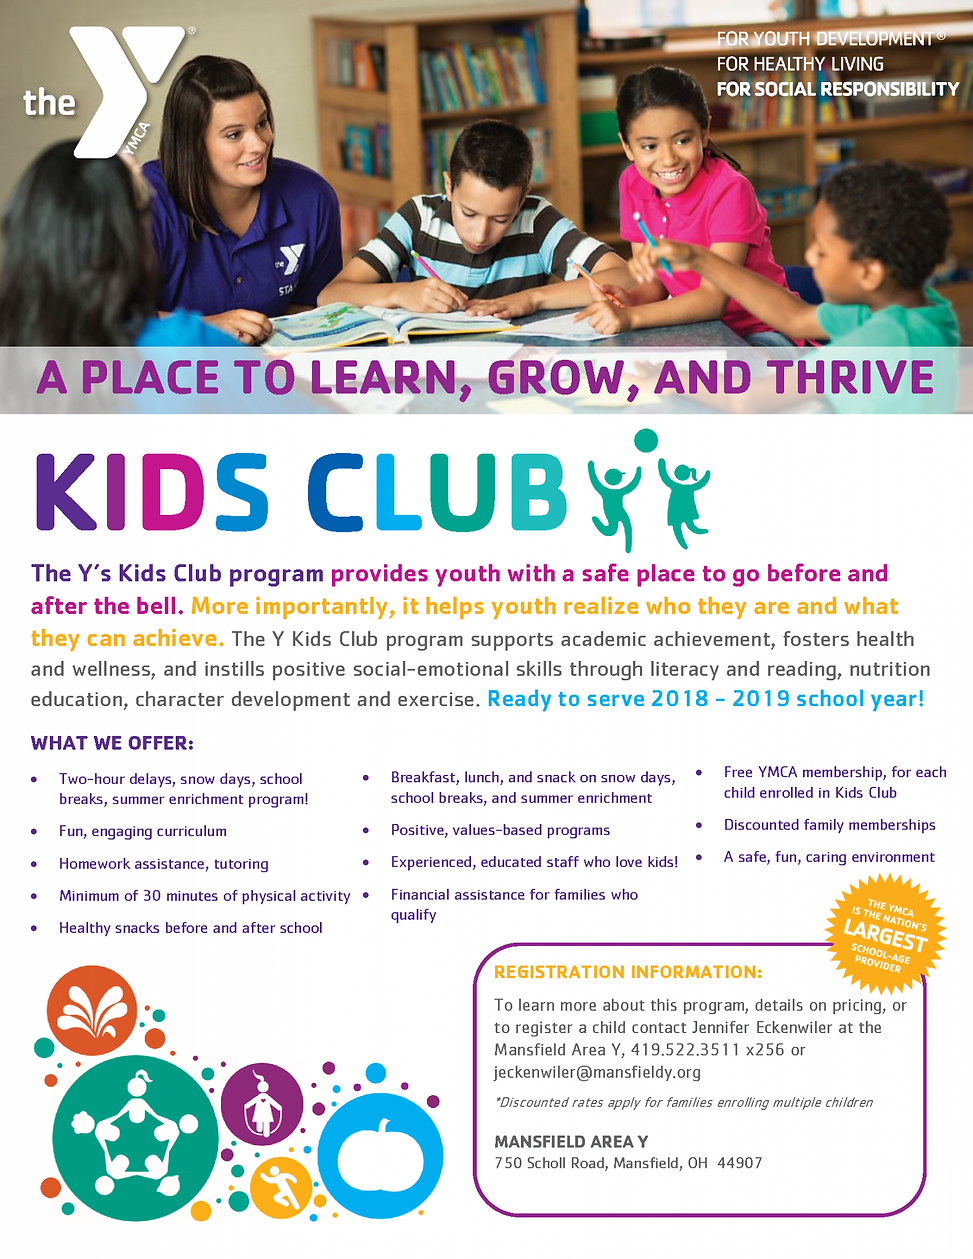 informational_brochure_for_kids_club.png